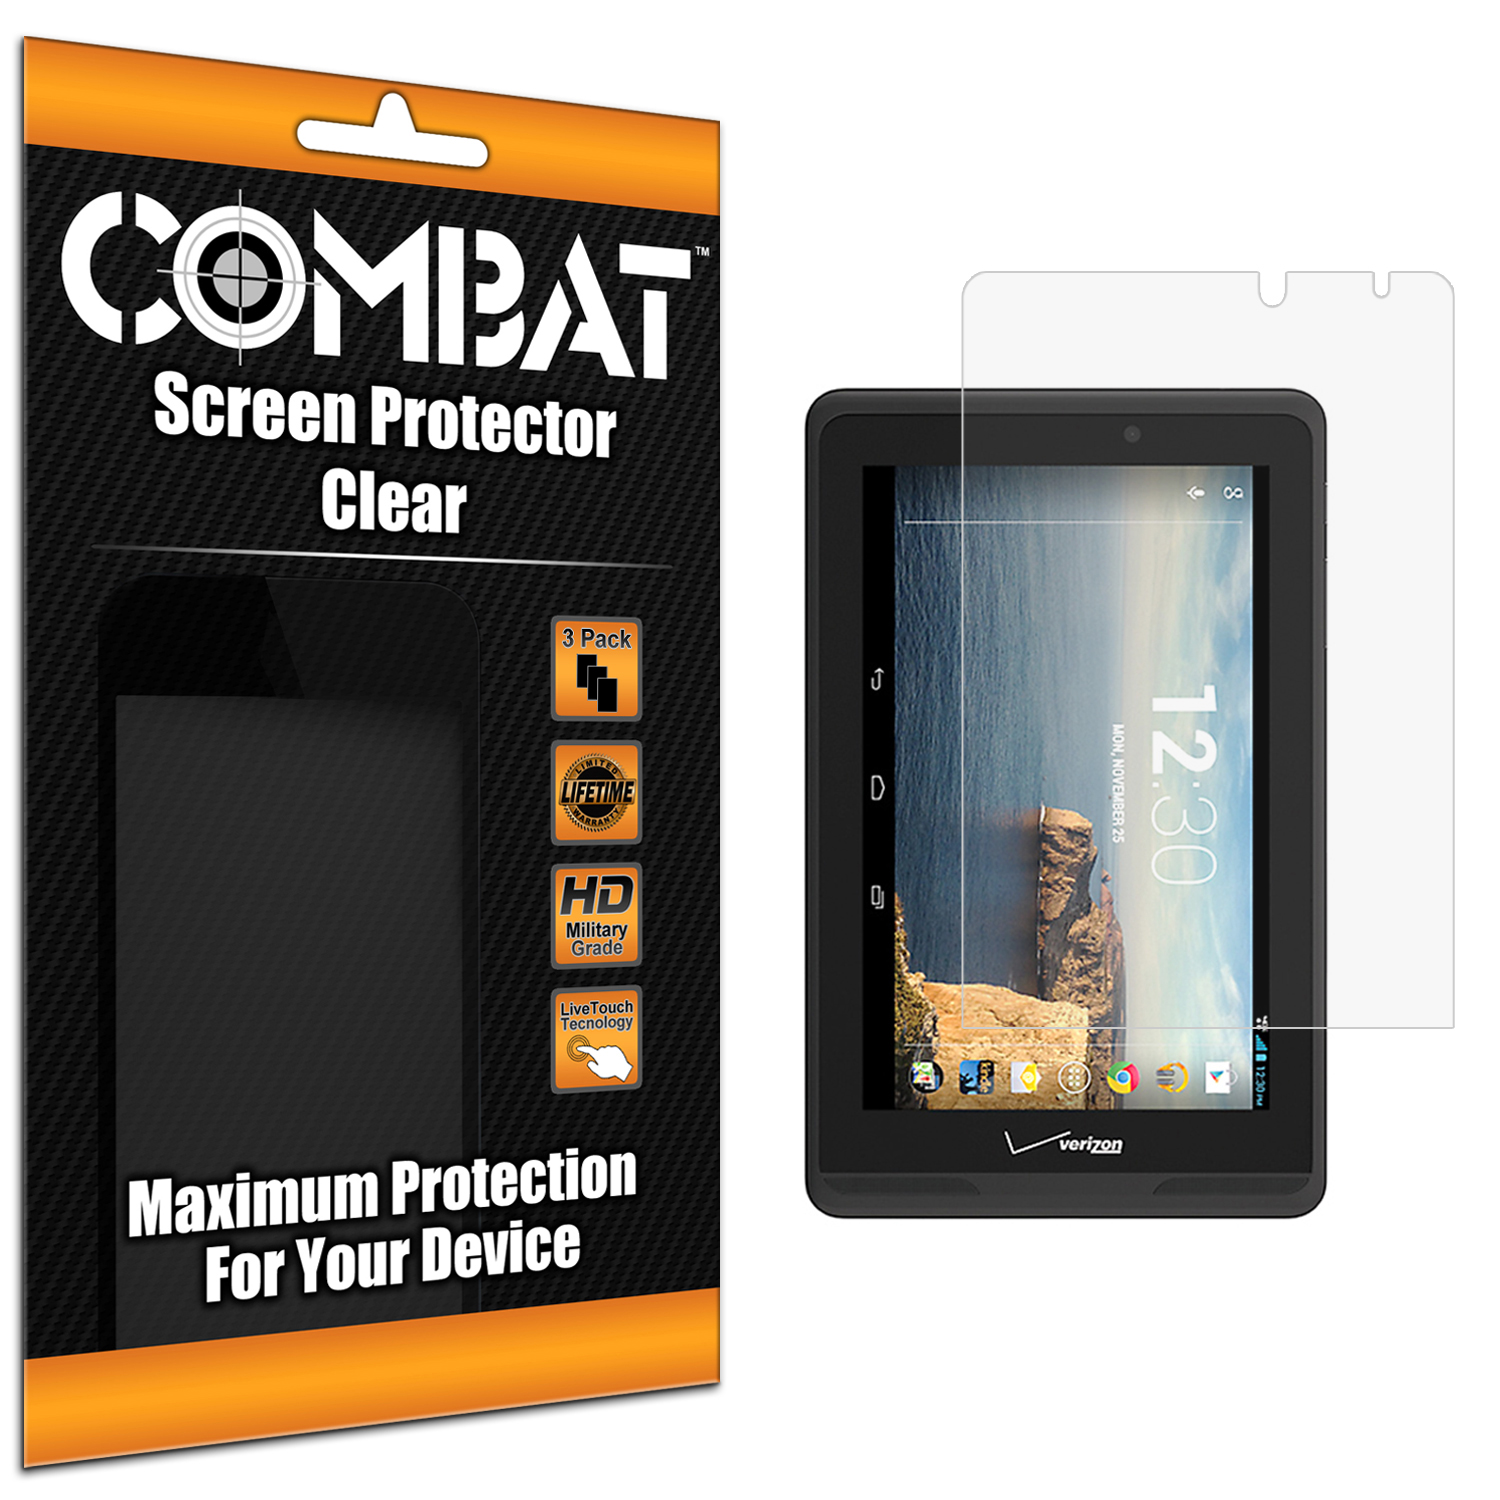 Verizon Wireless Ellipsis 7 Combat 3 Pack HD Clear Screen Protector